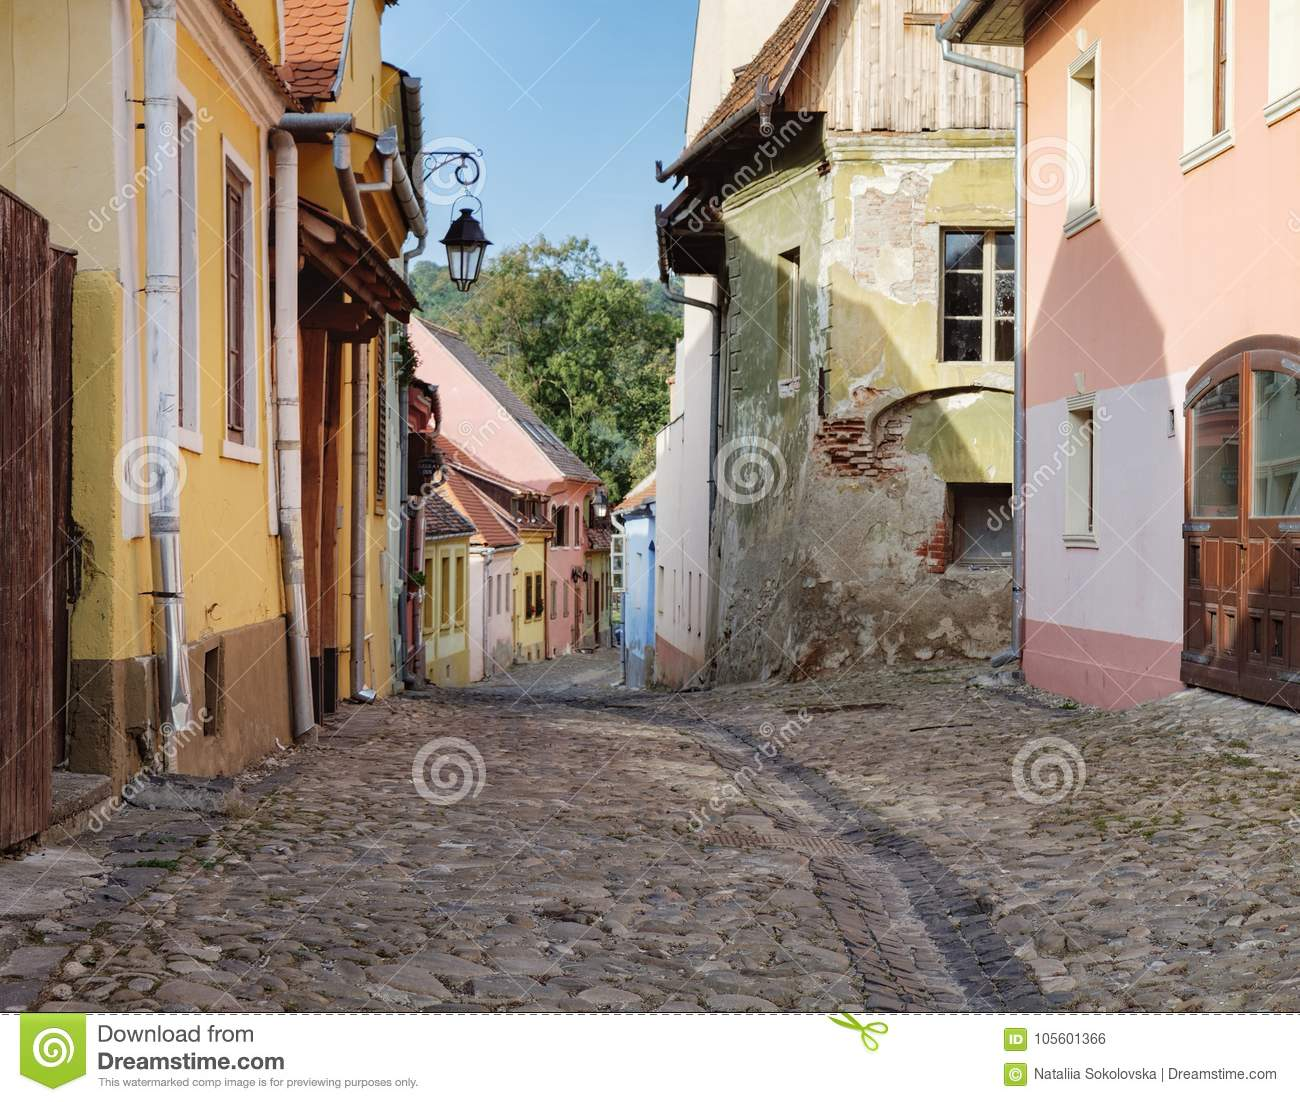 Street with medieval houses in Sighisoara, Romania